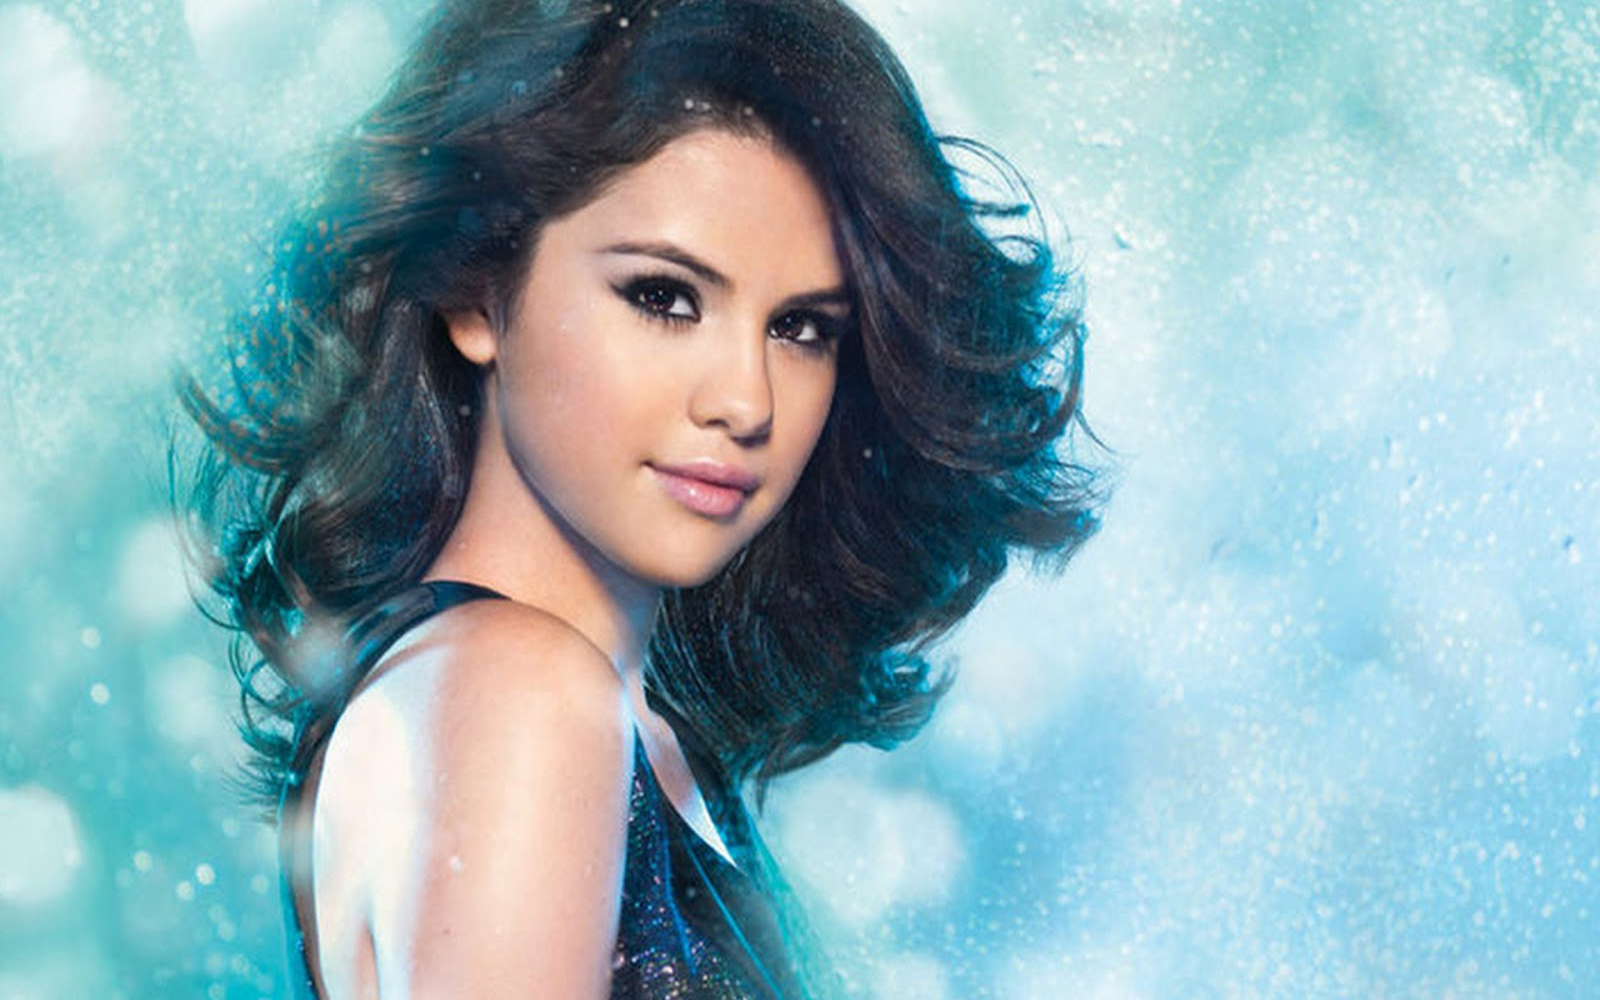 Selena gomez latest hot hd wallpapers for desktop and notebook - Selena gomez latest hd wallpapers ...